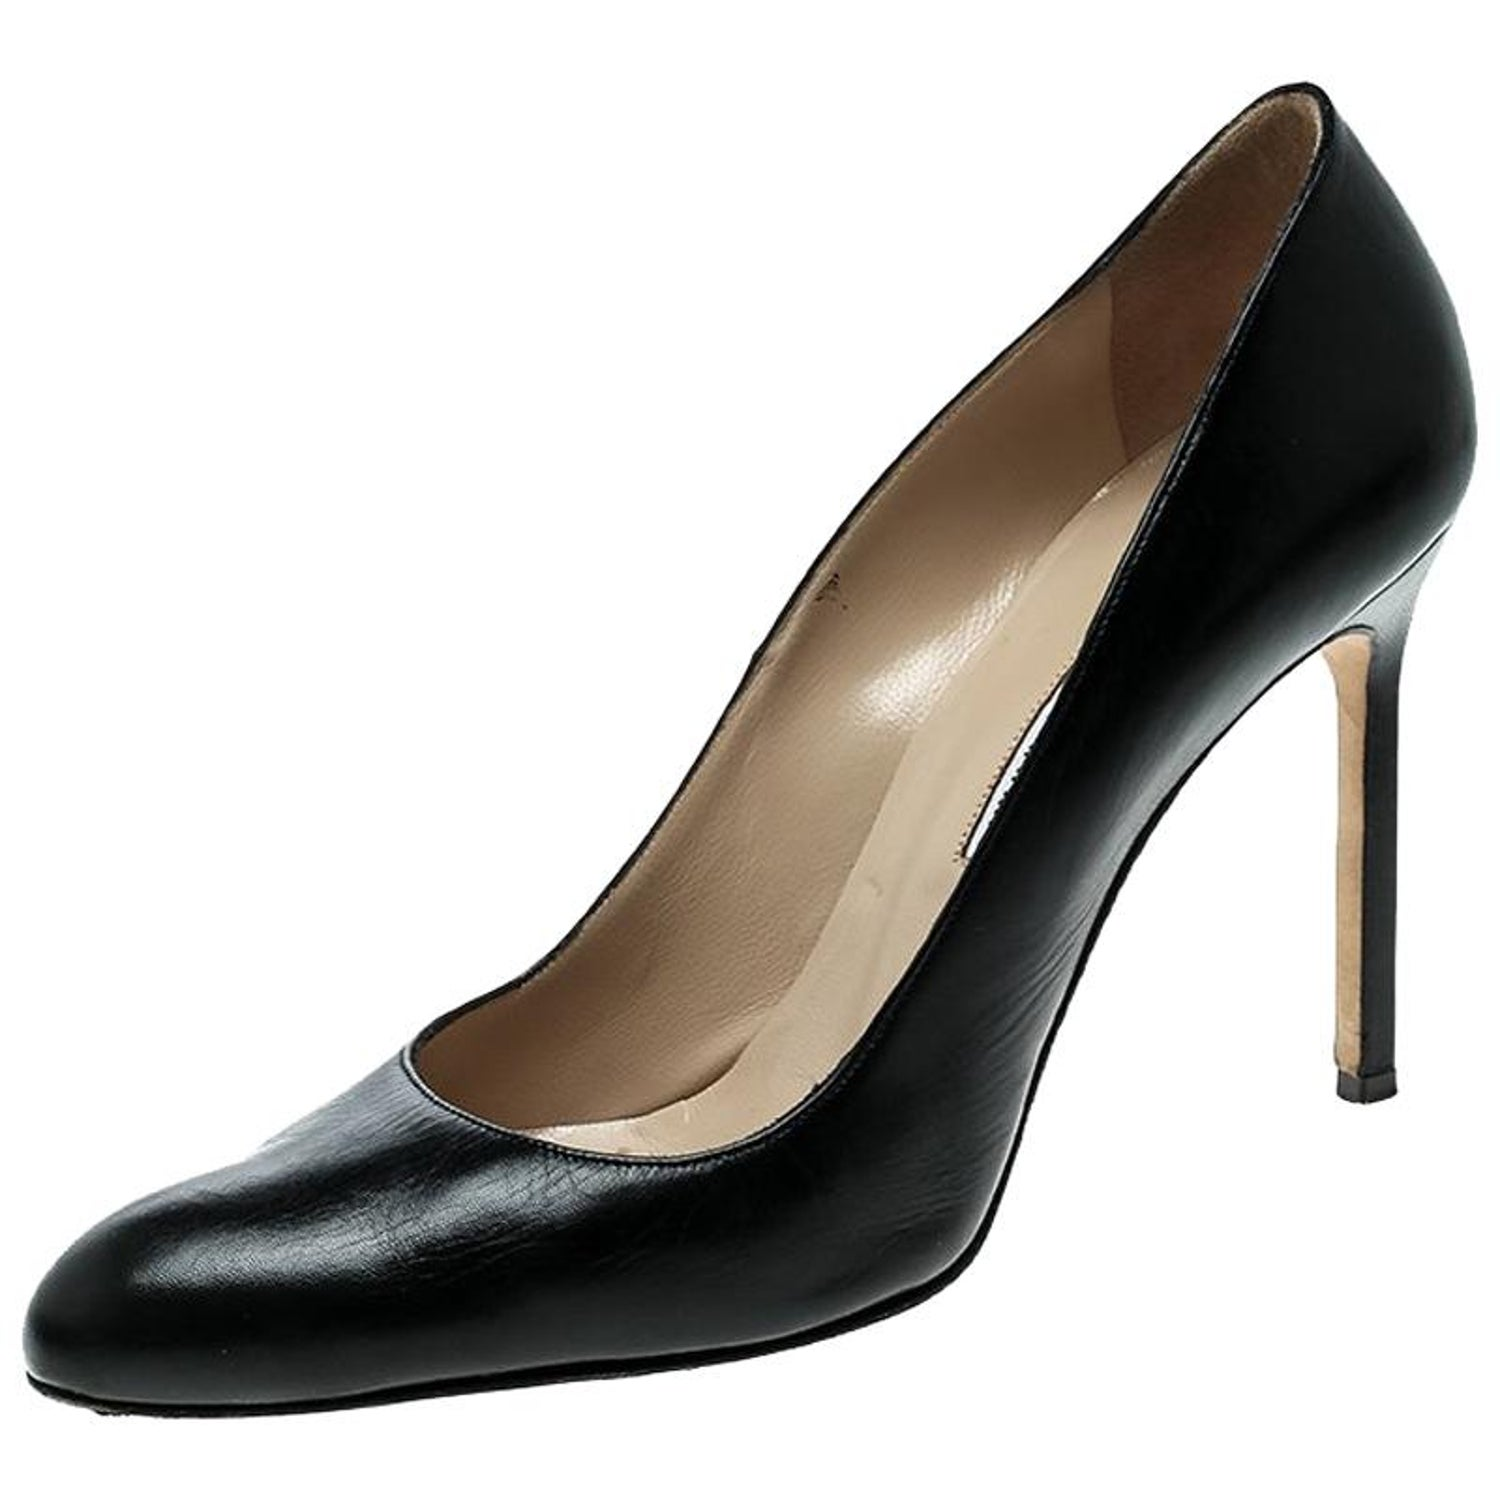 6c26262f6653 Manolo Blahnik Black Leather BB Pointed Toe Pumps Size 39.5 For Sale at  1stdibs